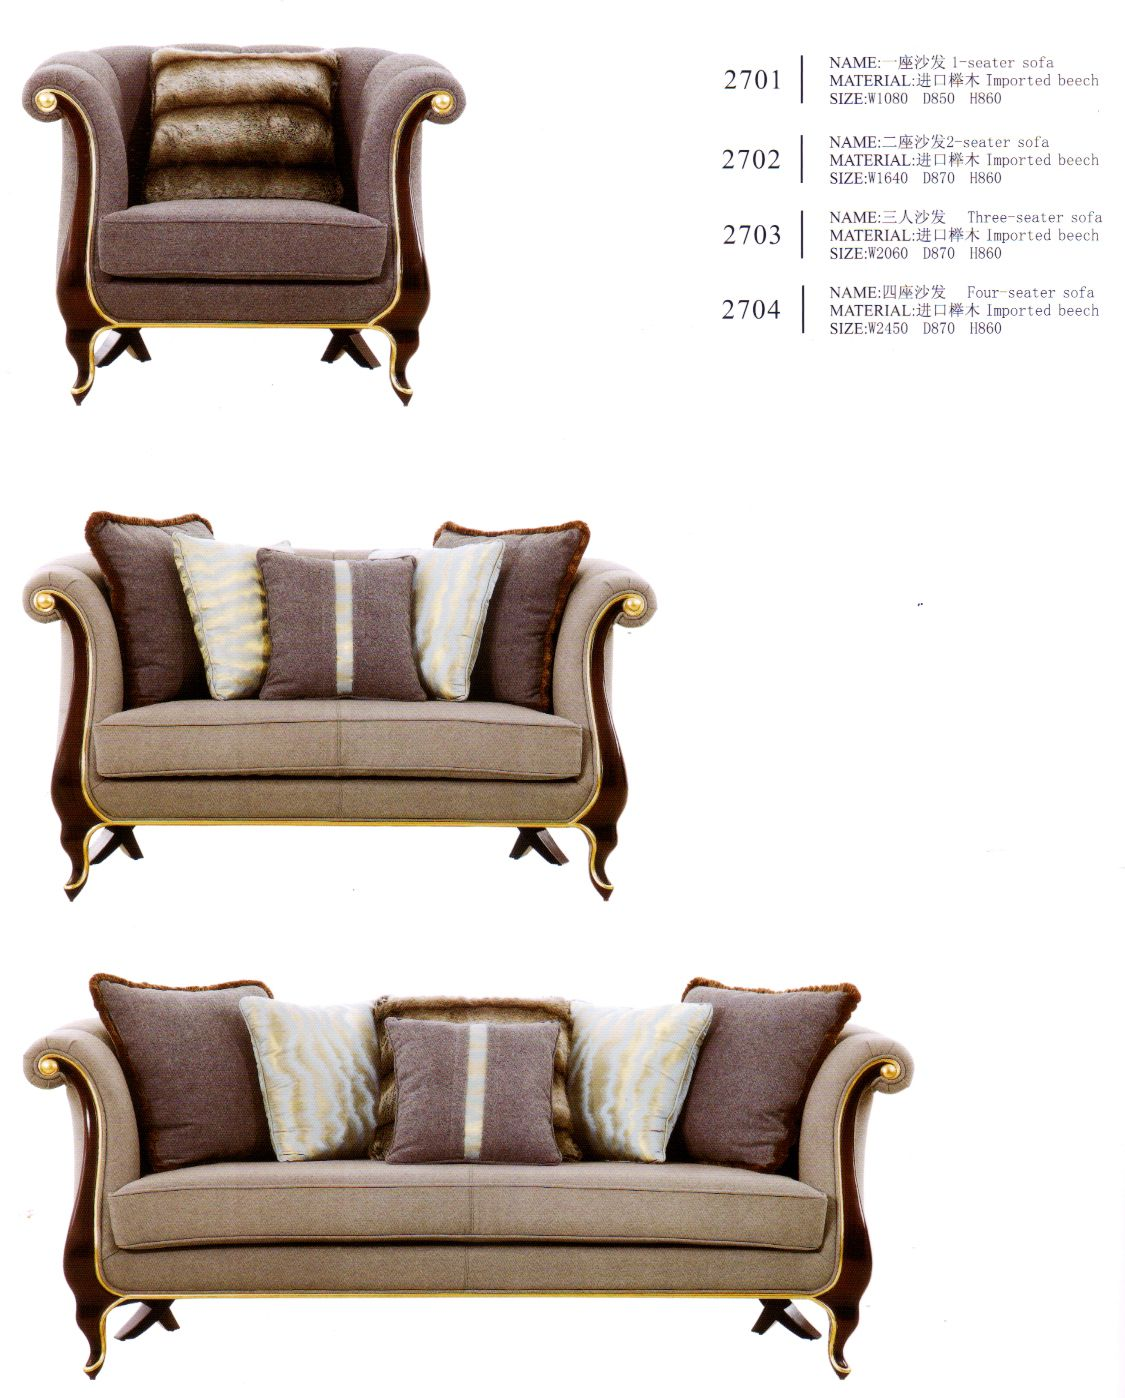 Sofa Set In English Clical Style Commoda Supplies Top Brands Furniture